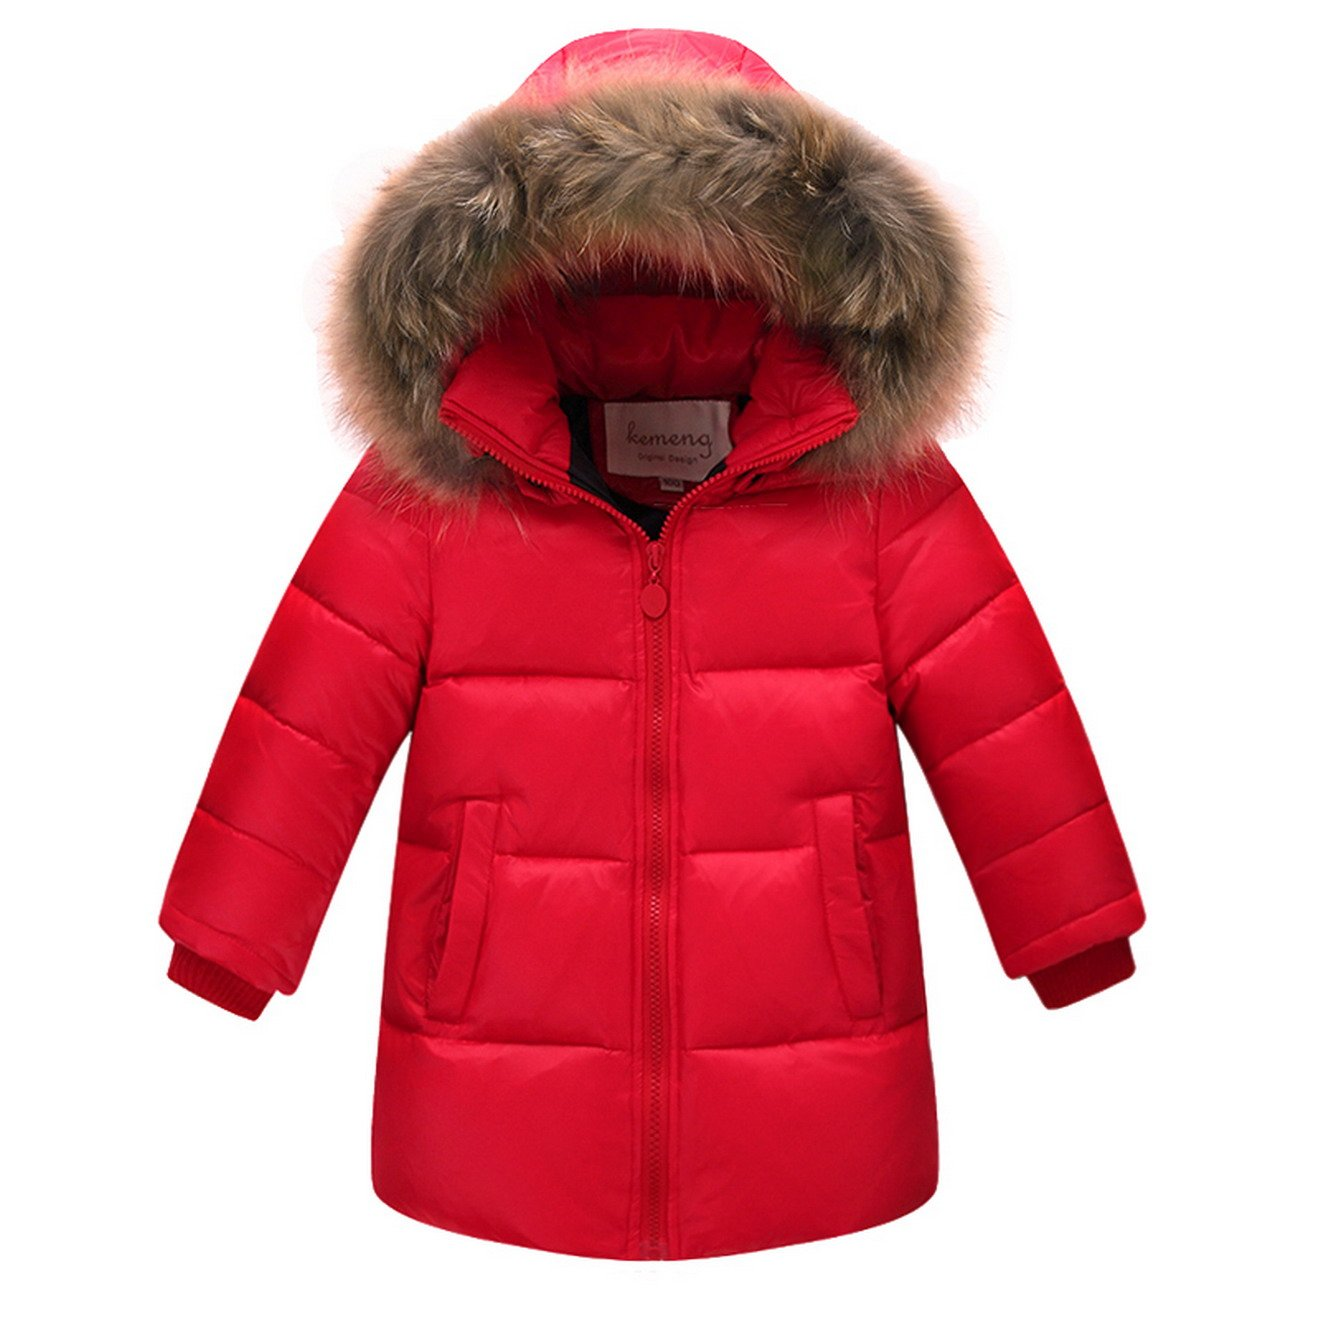 Toddler Baby Boys Girls Winter Warm Down Outerwear Ruffle Warm Hooded Jacket Coat ACMEDE